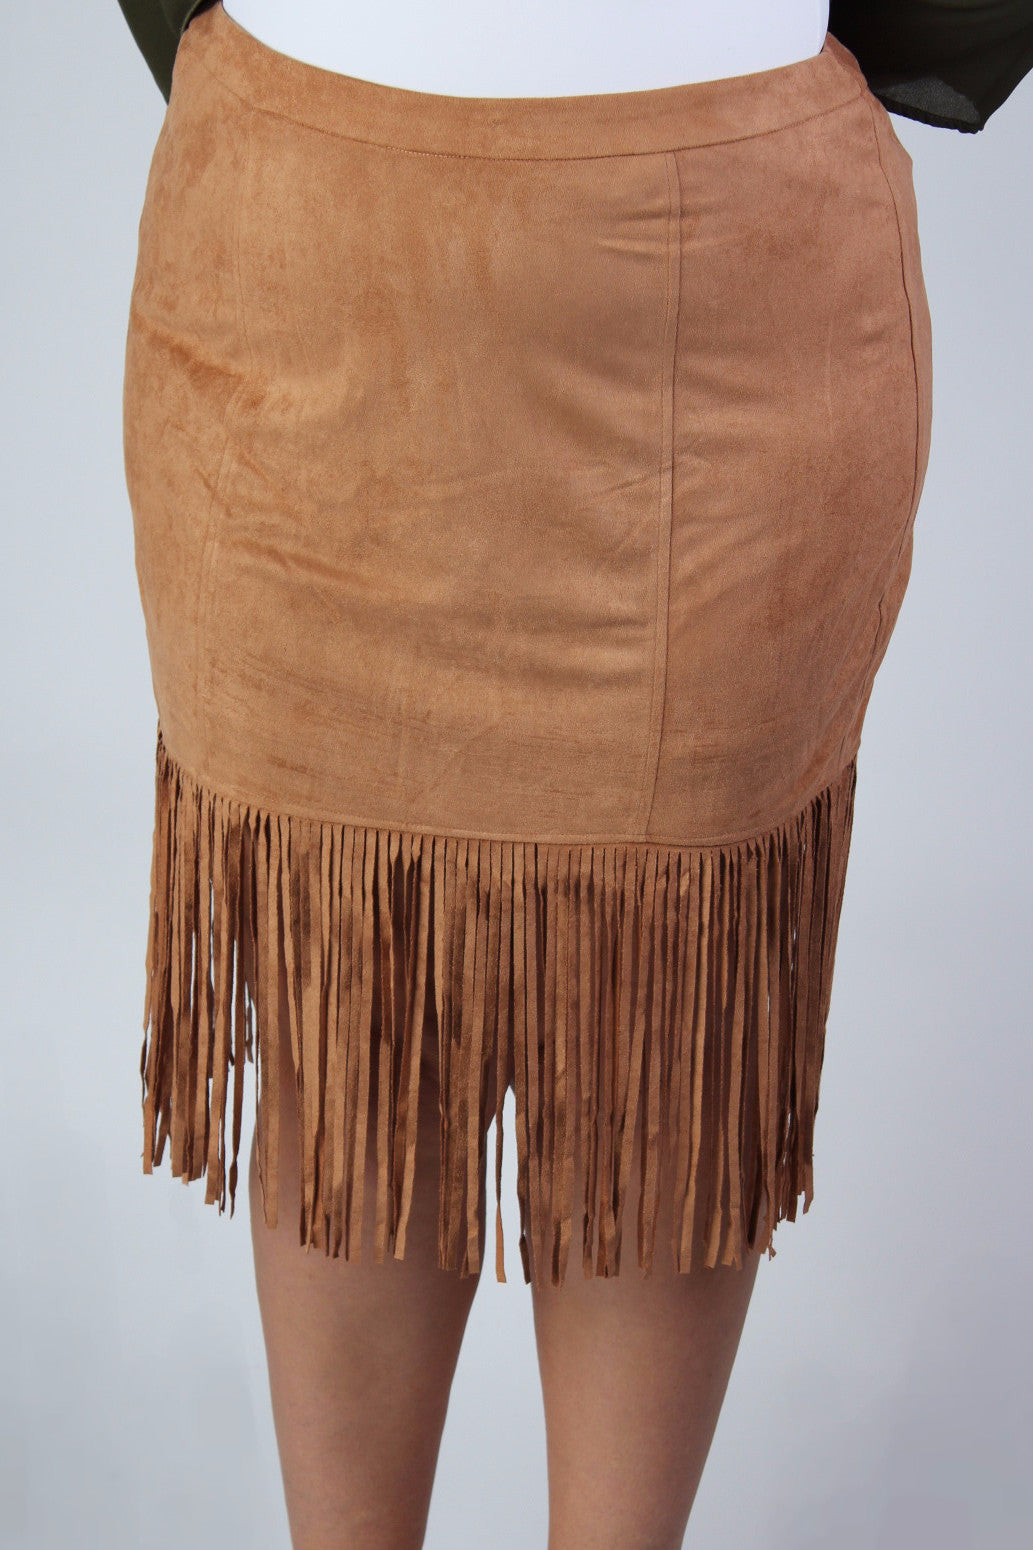 It's safe to say suede is having a moment, but we aren't complaining, and this fringe skirt is definitely feeding our obsession. With the fit of a pencil skirt, but all the fun of Sunny and Cher, this skirt brings the appeal of a structured fit together with the world of hippy style, and we feel pretty groovy about it. Also available in c harcoal . 100% Polyester Hand wash cold Hang dry Imported Length (with fringe) Size: 12/14 29